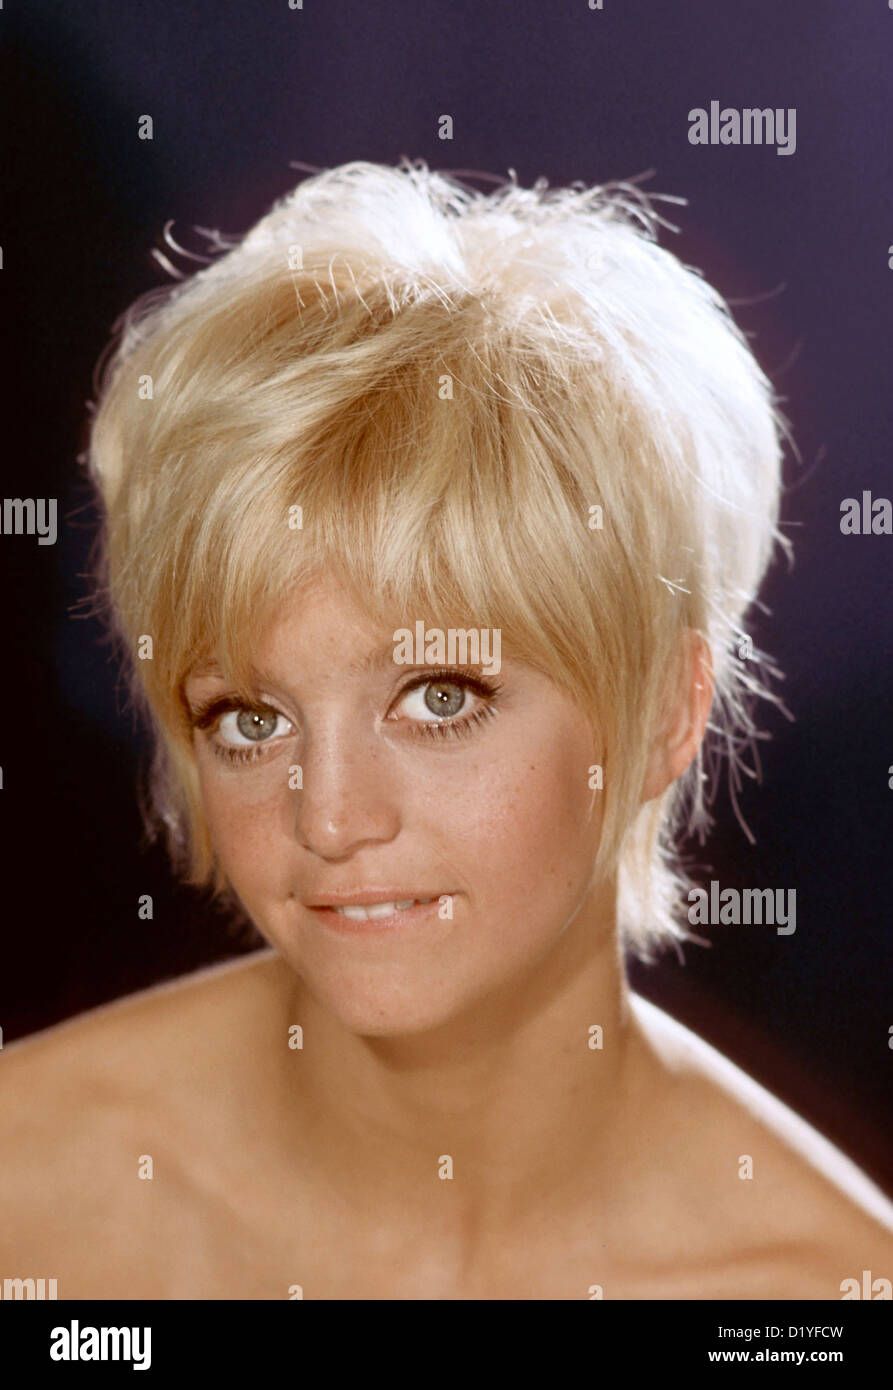 GOLDIE HAWN US Film Actress About 1980 Stock Photo 52850585